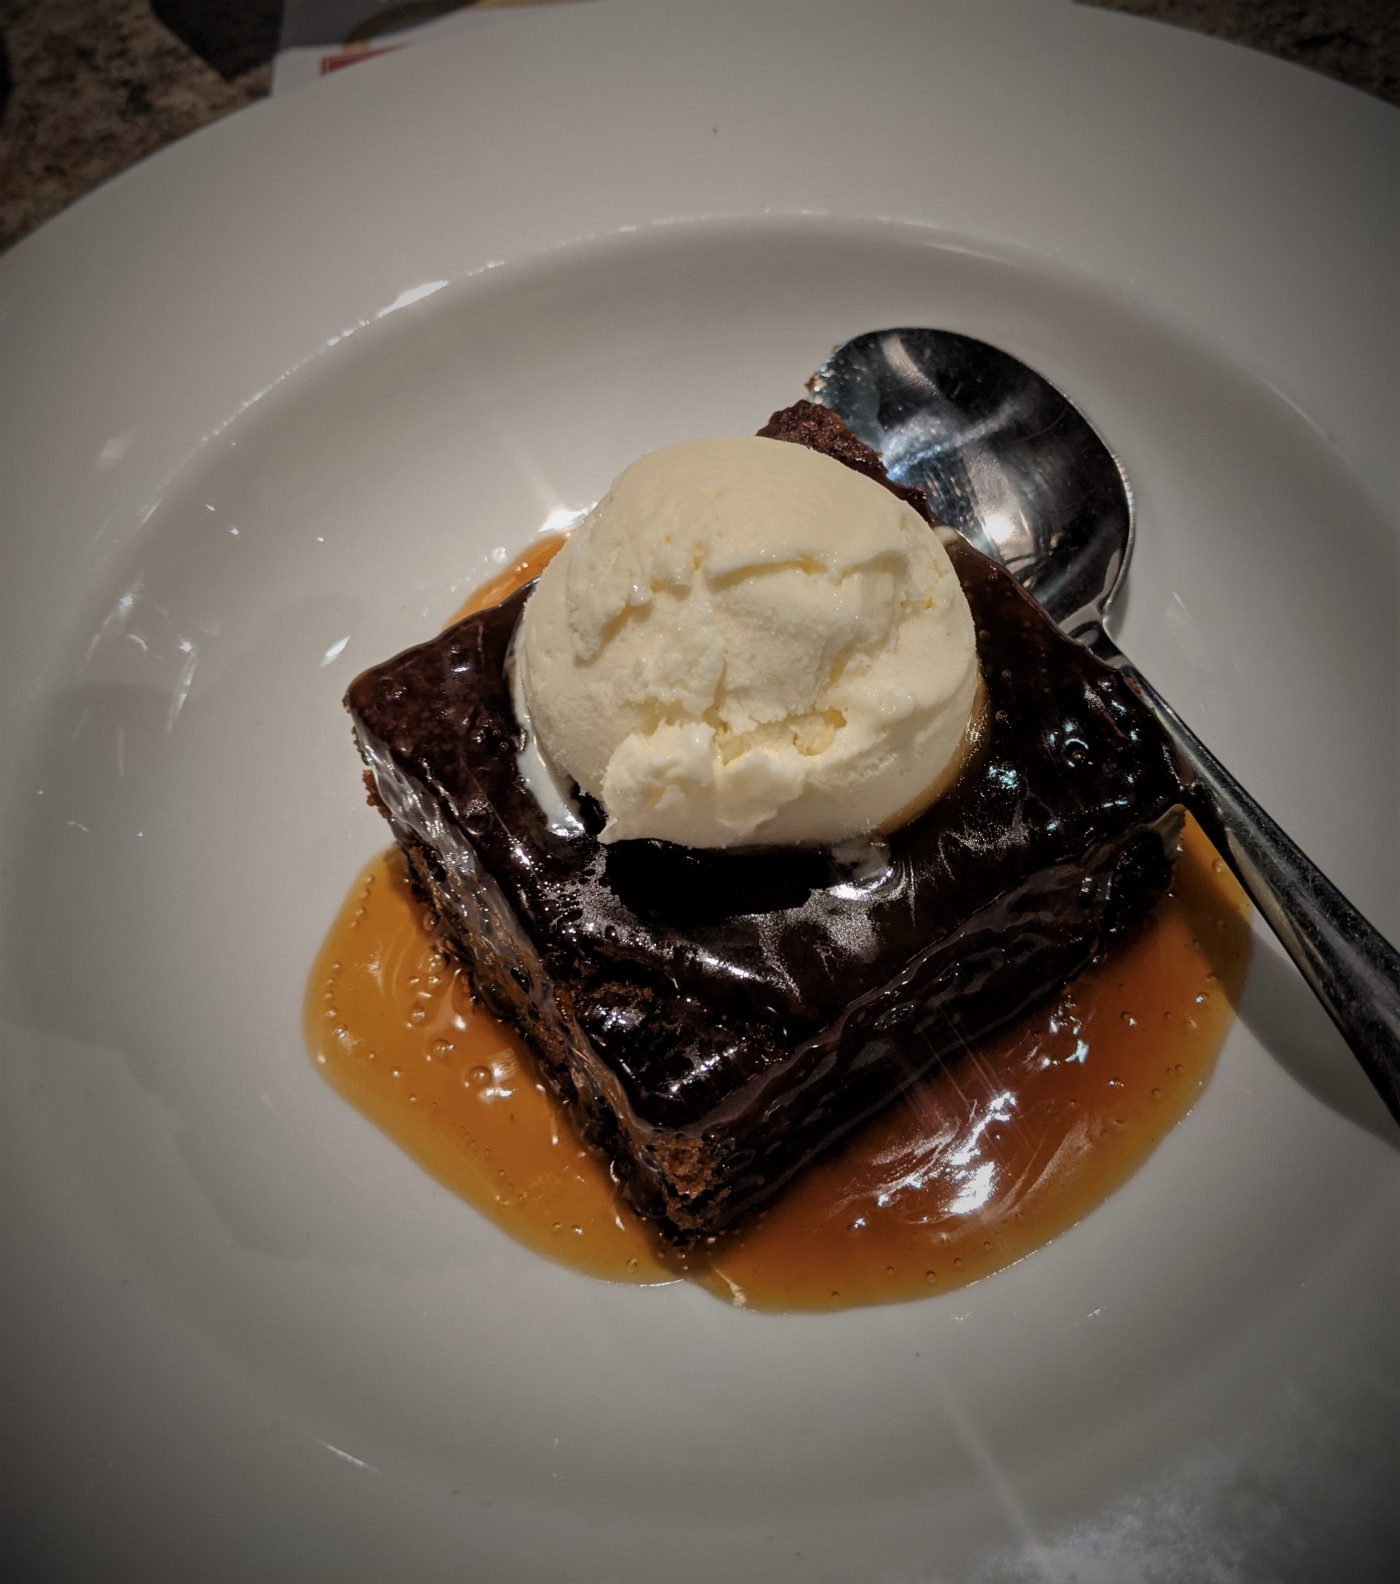 Sticky toffee pudding in white bowl topped with a scoop of ice cream